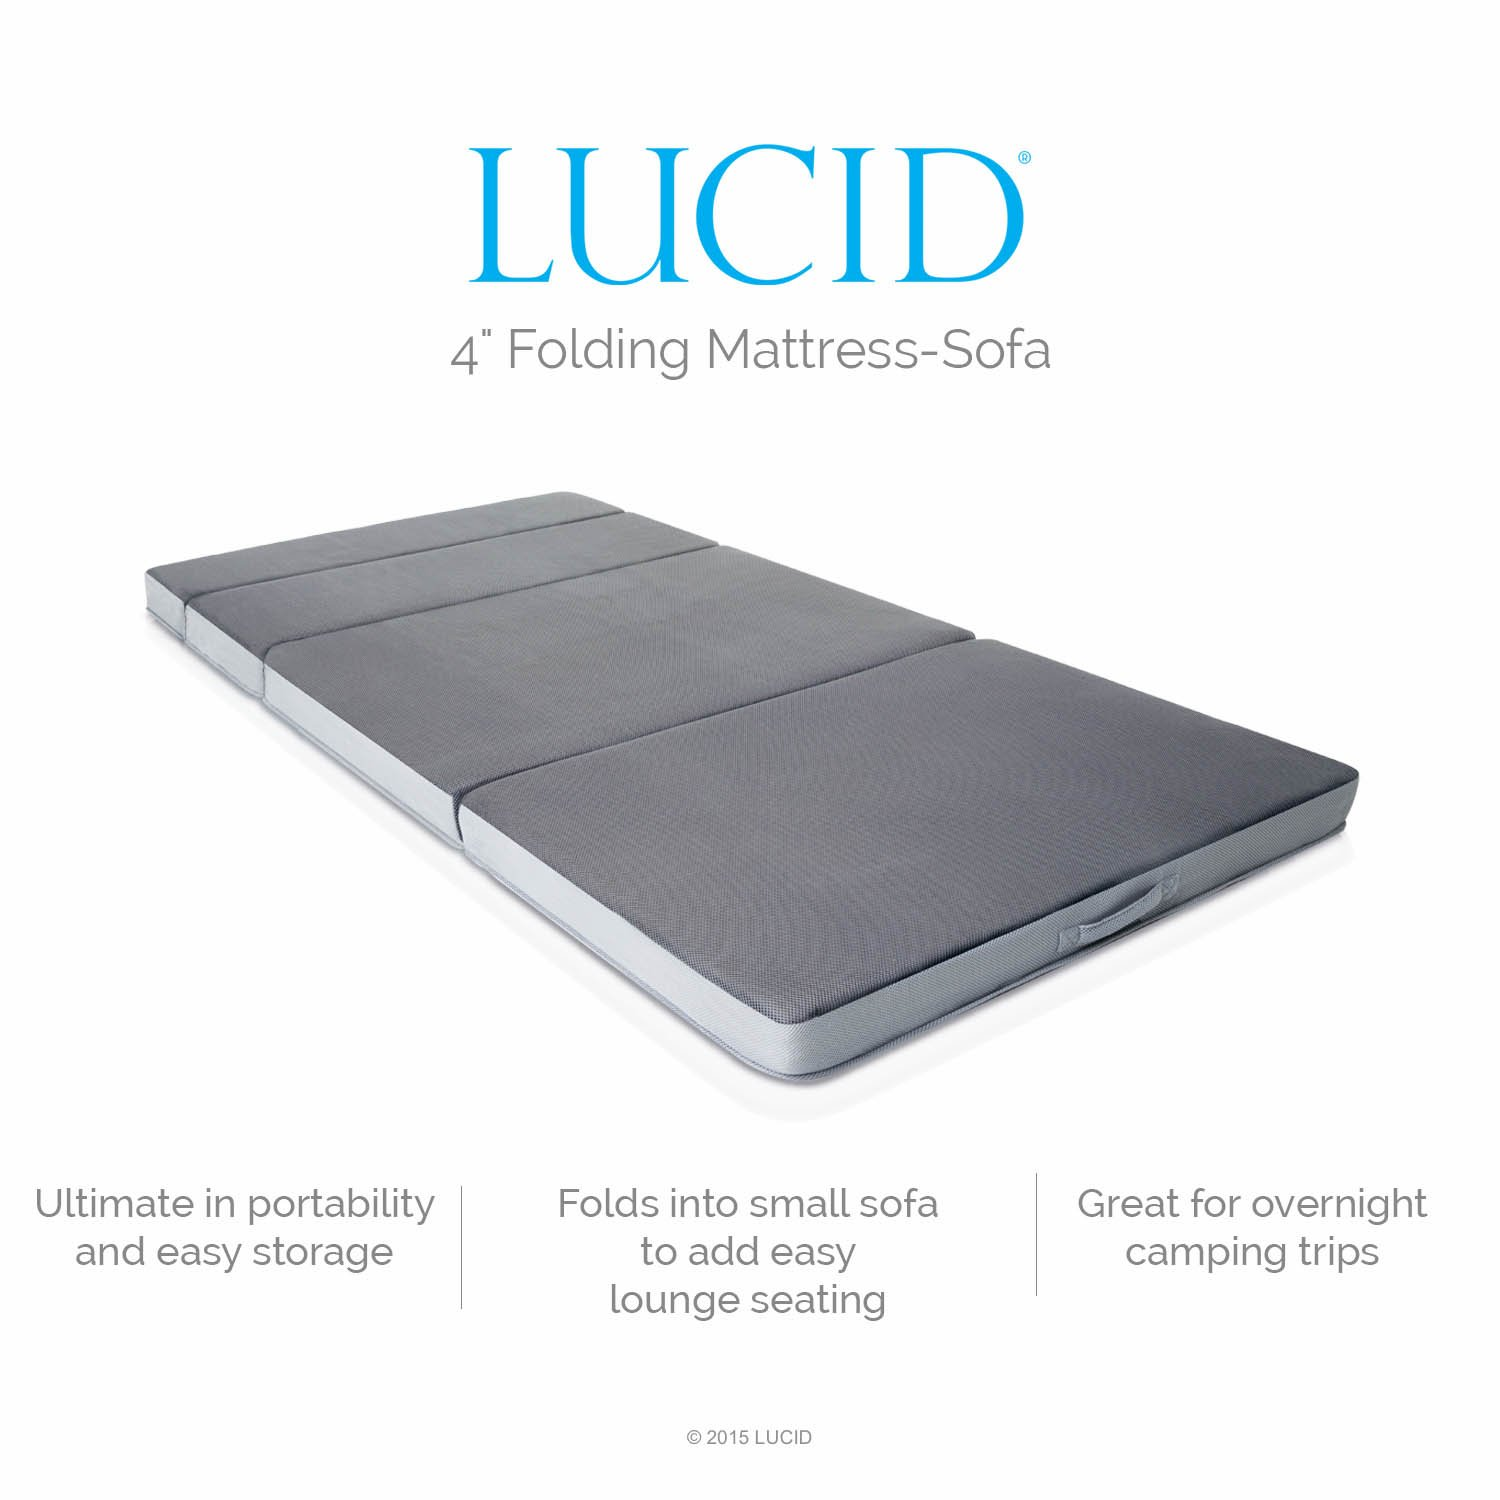 Amazon.com: LUCID 4 Inch Folding Mattress - Twin Size Dark grey: Home &  Kitchen